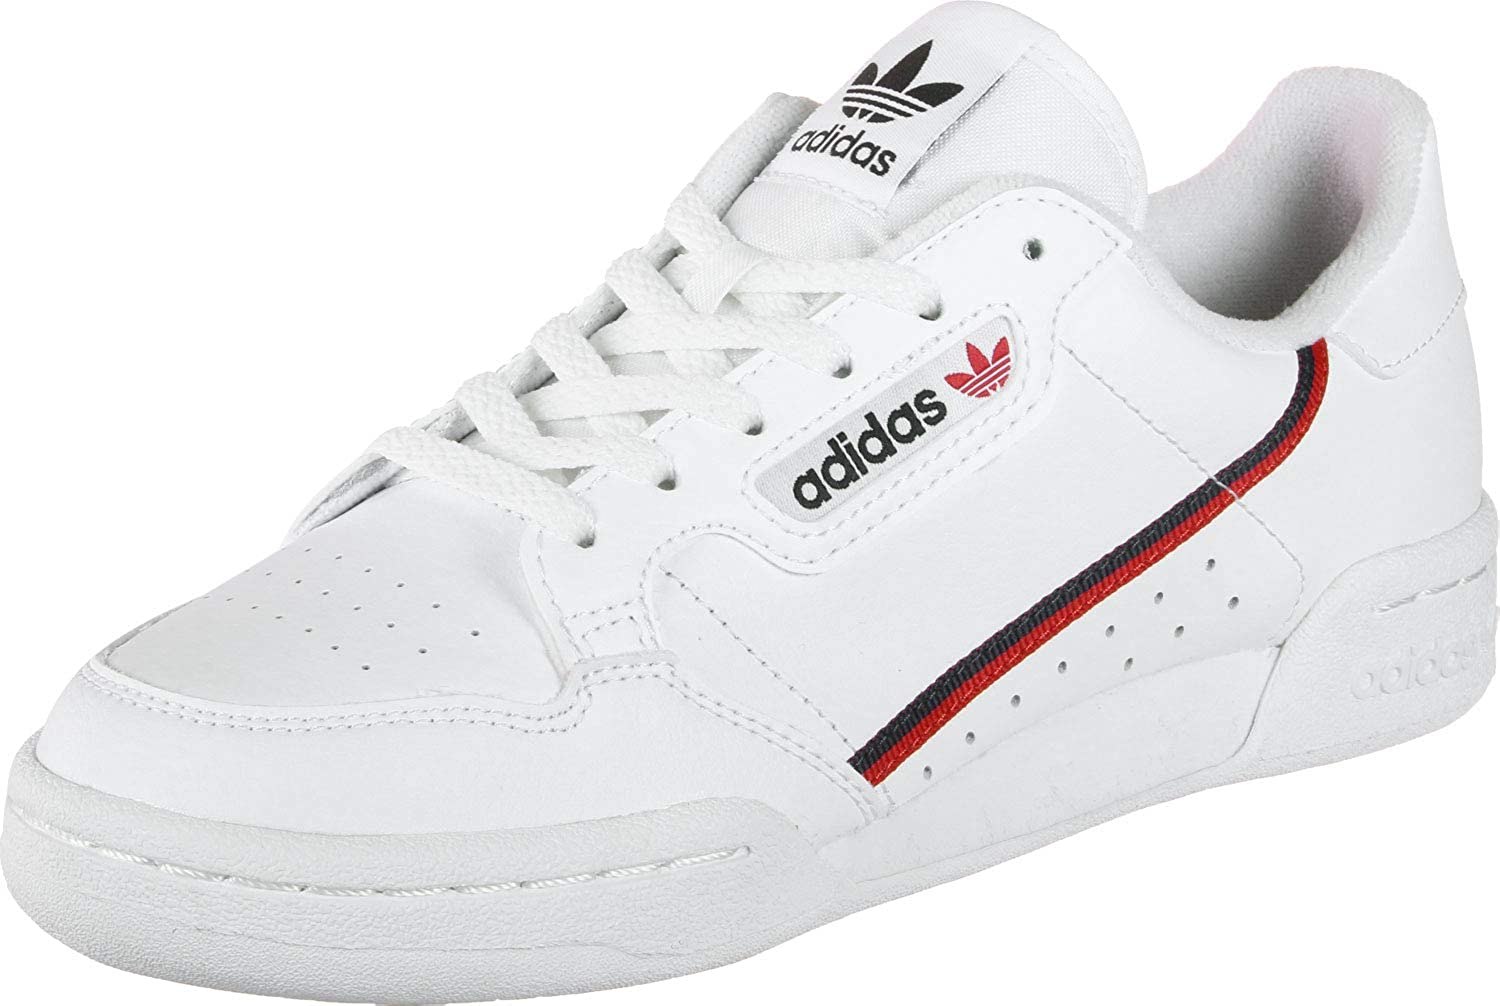 Adidas Continental 80 J, Zapatillas de Deporte Unisex-Child, Blanco (Ftwbla/Escarl/Maruni 000), 37 1/3 EU: Amazon.es: Zapatos y complementos